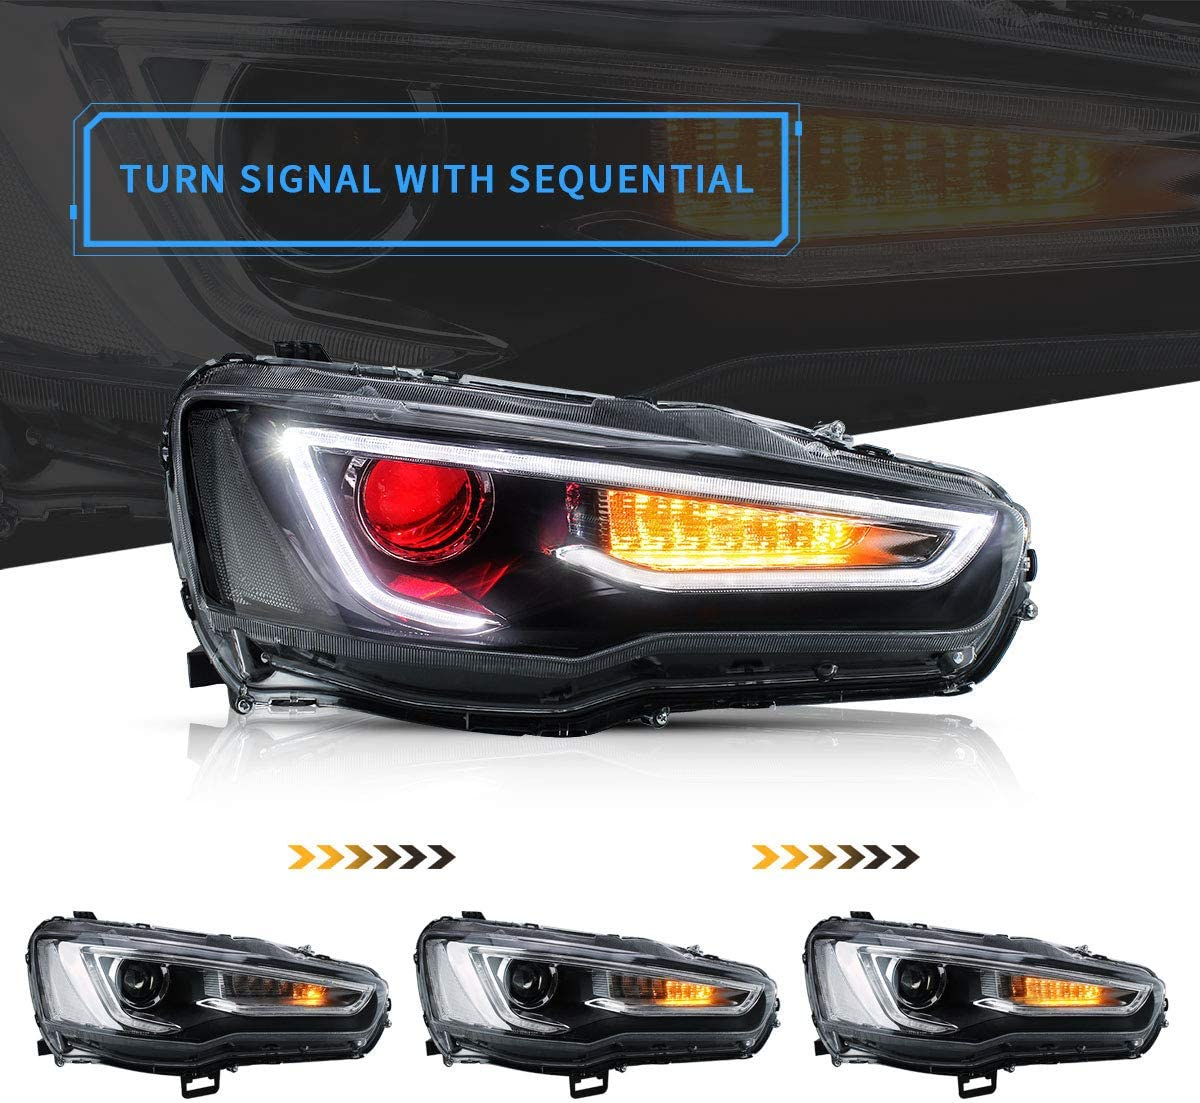 Front Lamp Assembly with Dual Beam Lens D2S// D2H Bulbs Not Included VLAND Projector LED Headlights Compatible with Mitsubishi Lancer EVO X 2008-2019 Driver and Passenger Side